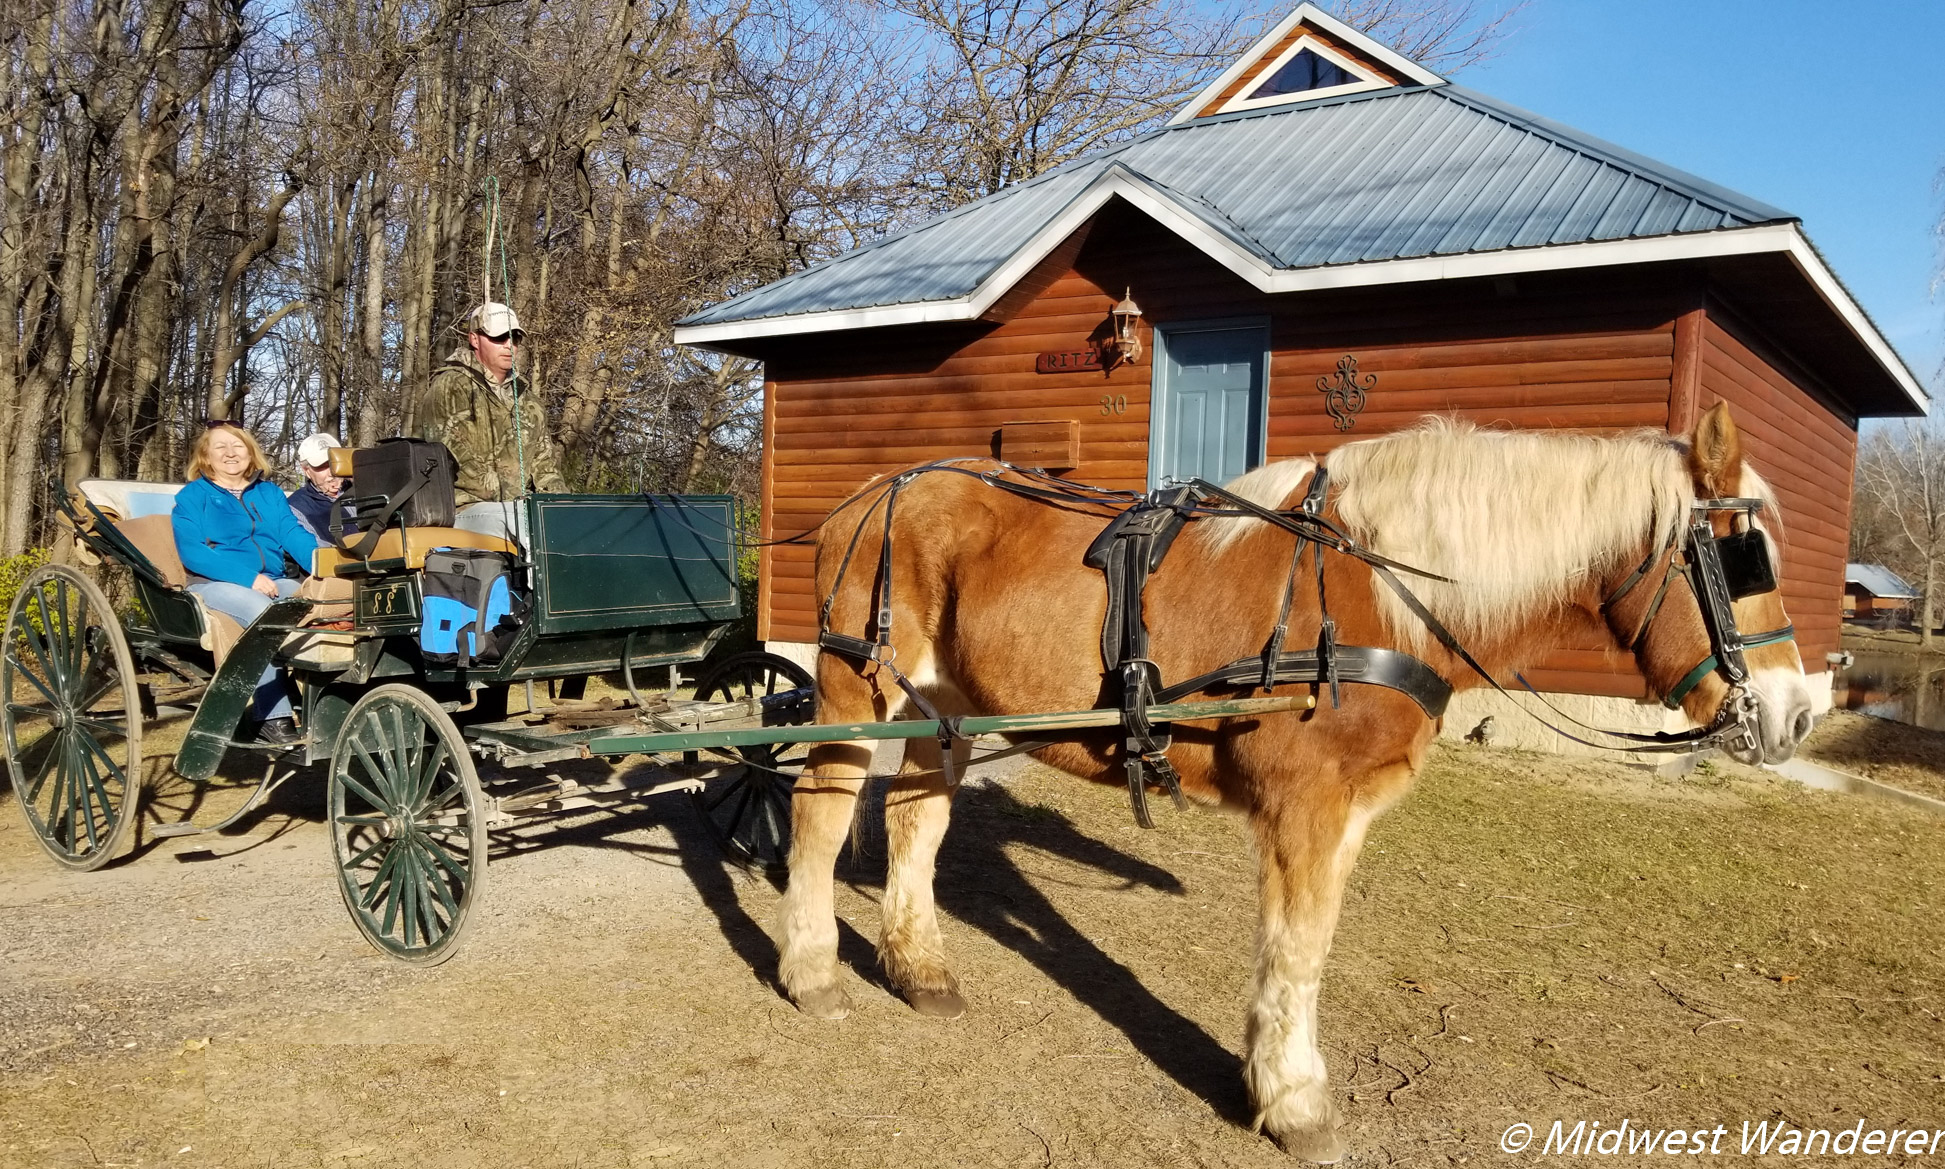 Serenity Springs brings you to your cabin by horse and carriage